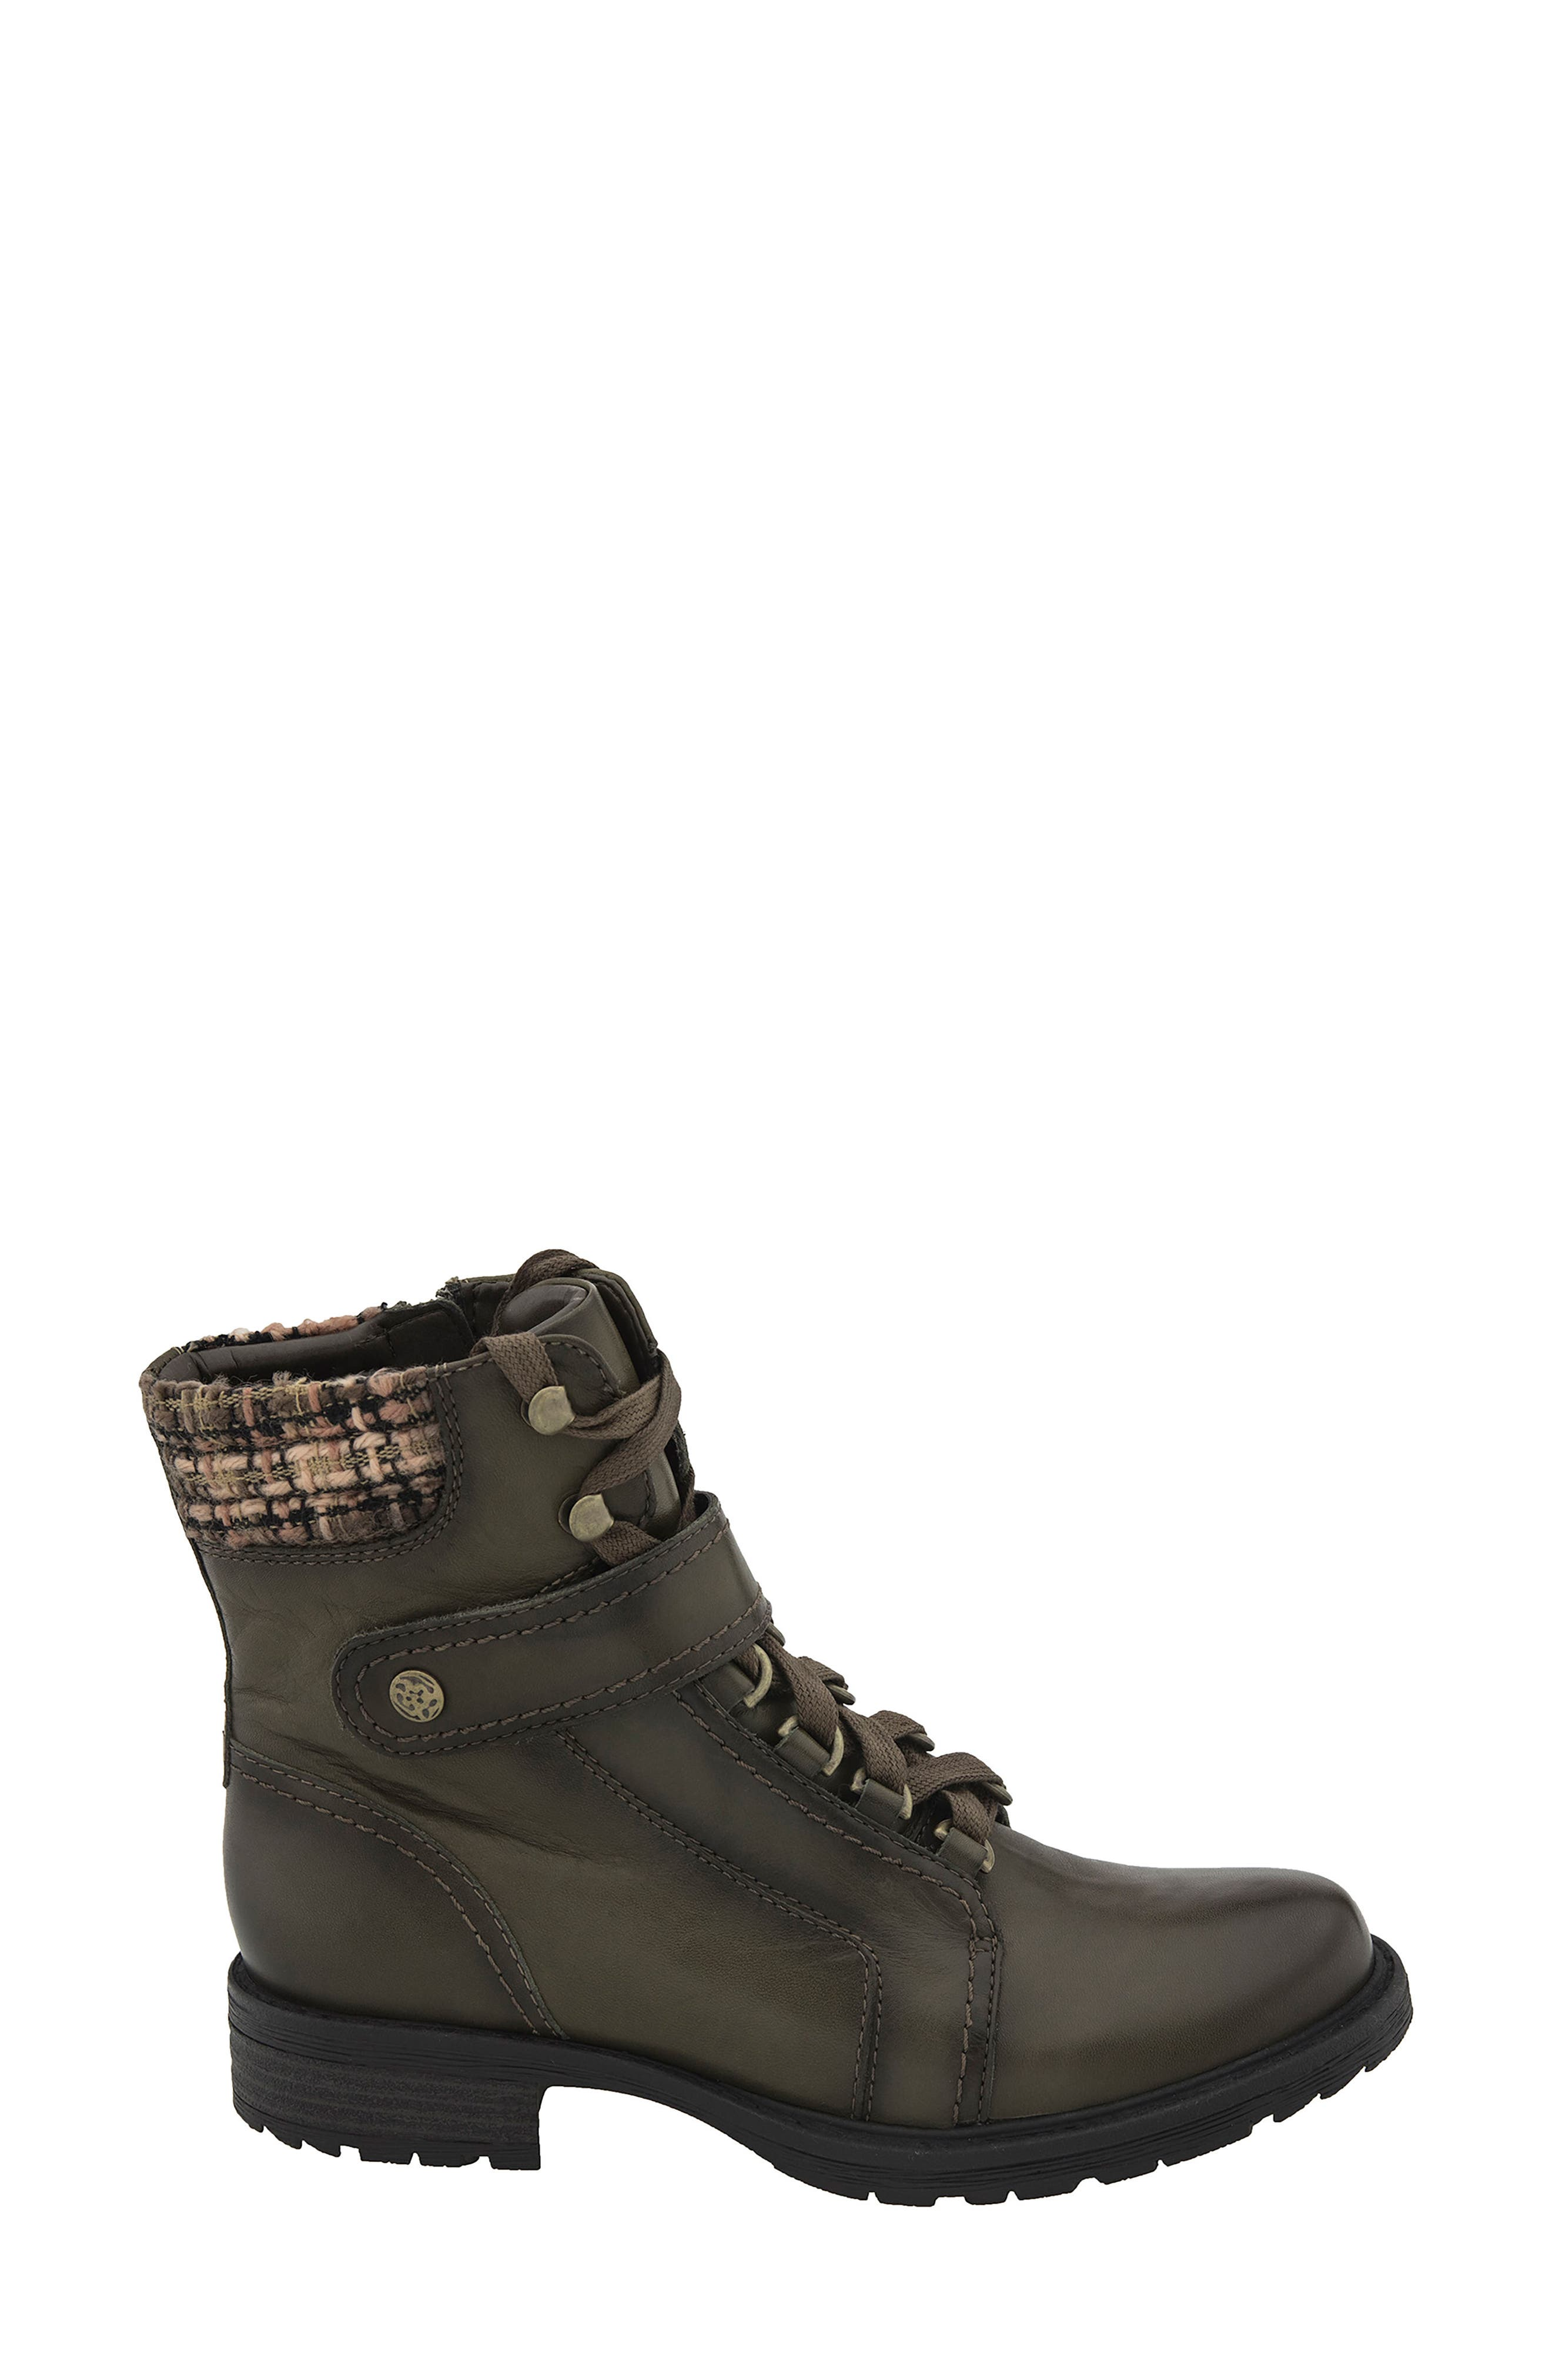 Everest Lace-Up Boot,                             Alternate thumbnail 6, color,